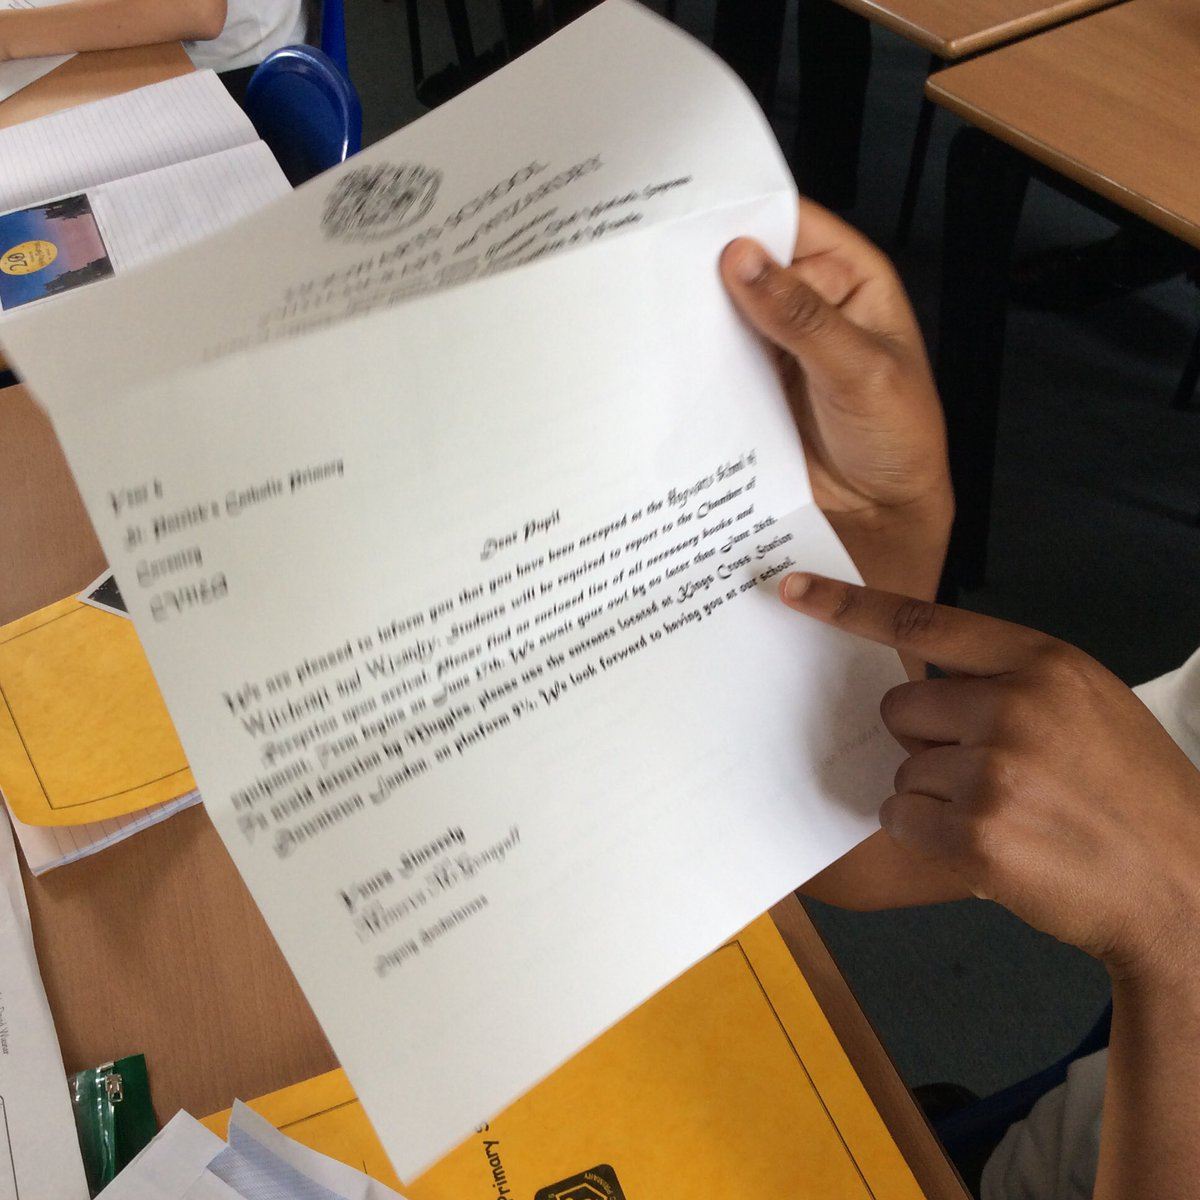 This morning, Year 6 received some very exciting letters to launch our #HarryPotter week. #HarryPotter20 @jk_rowling @KidsBloomsbury